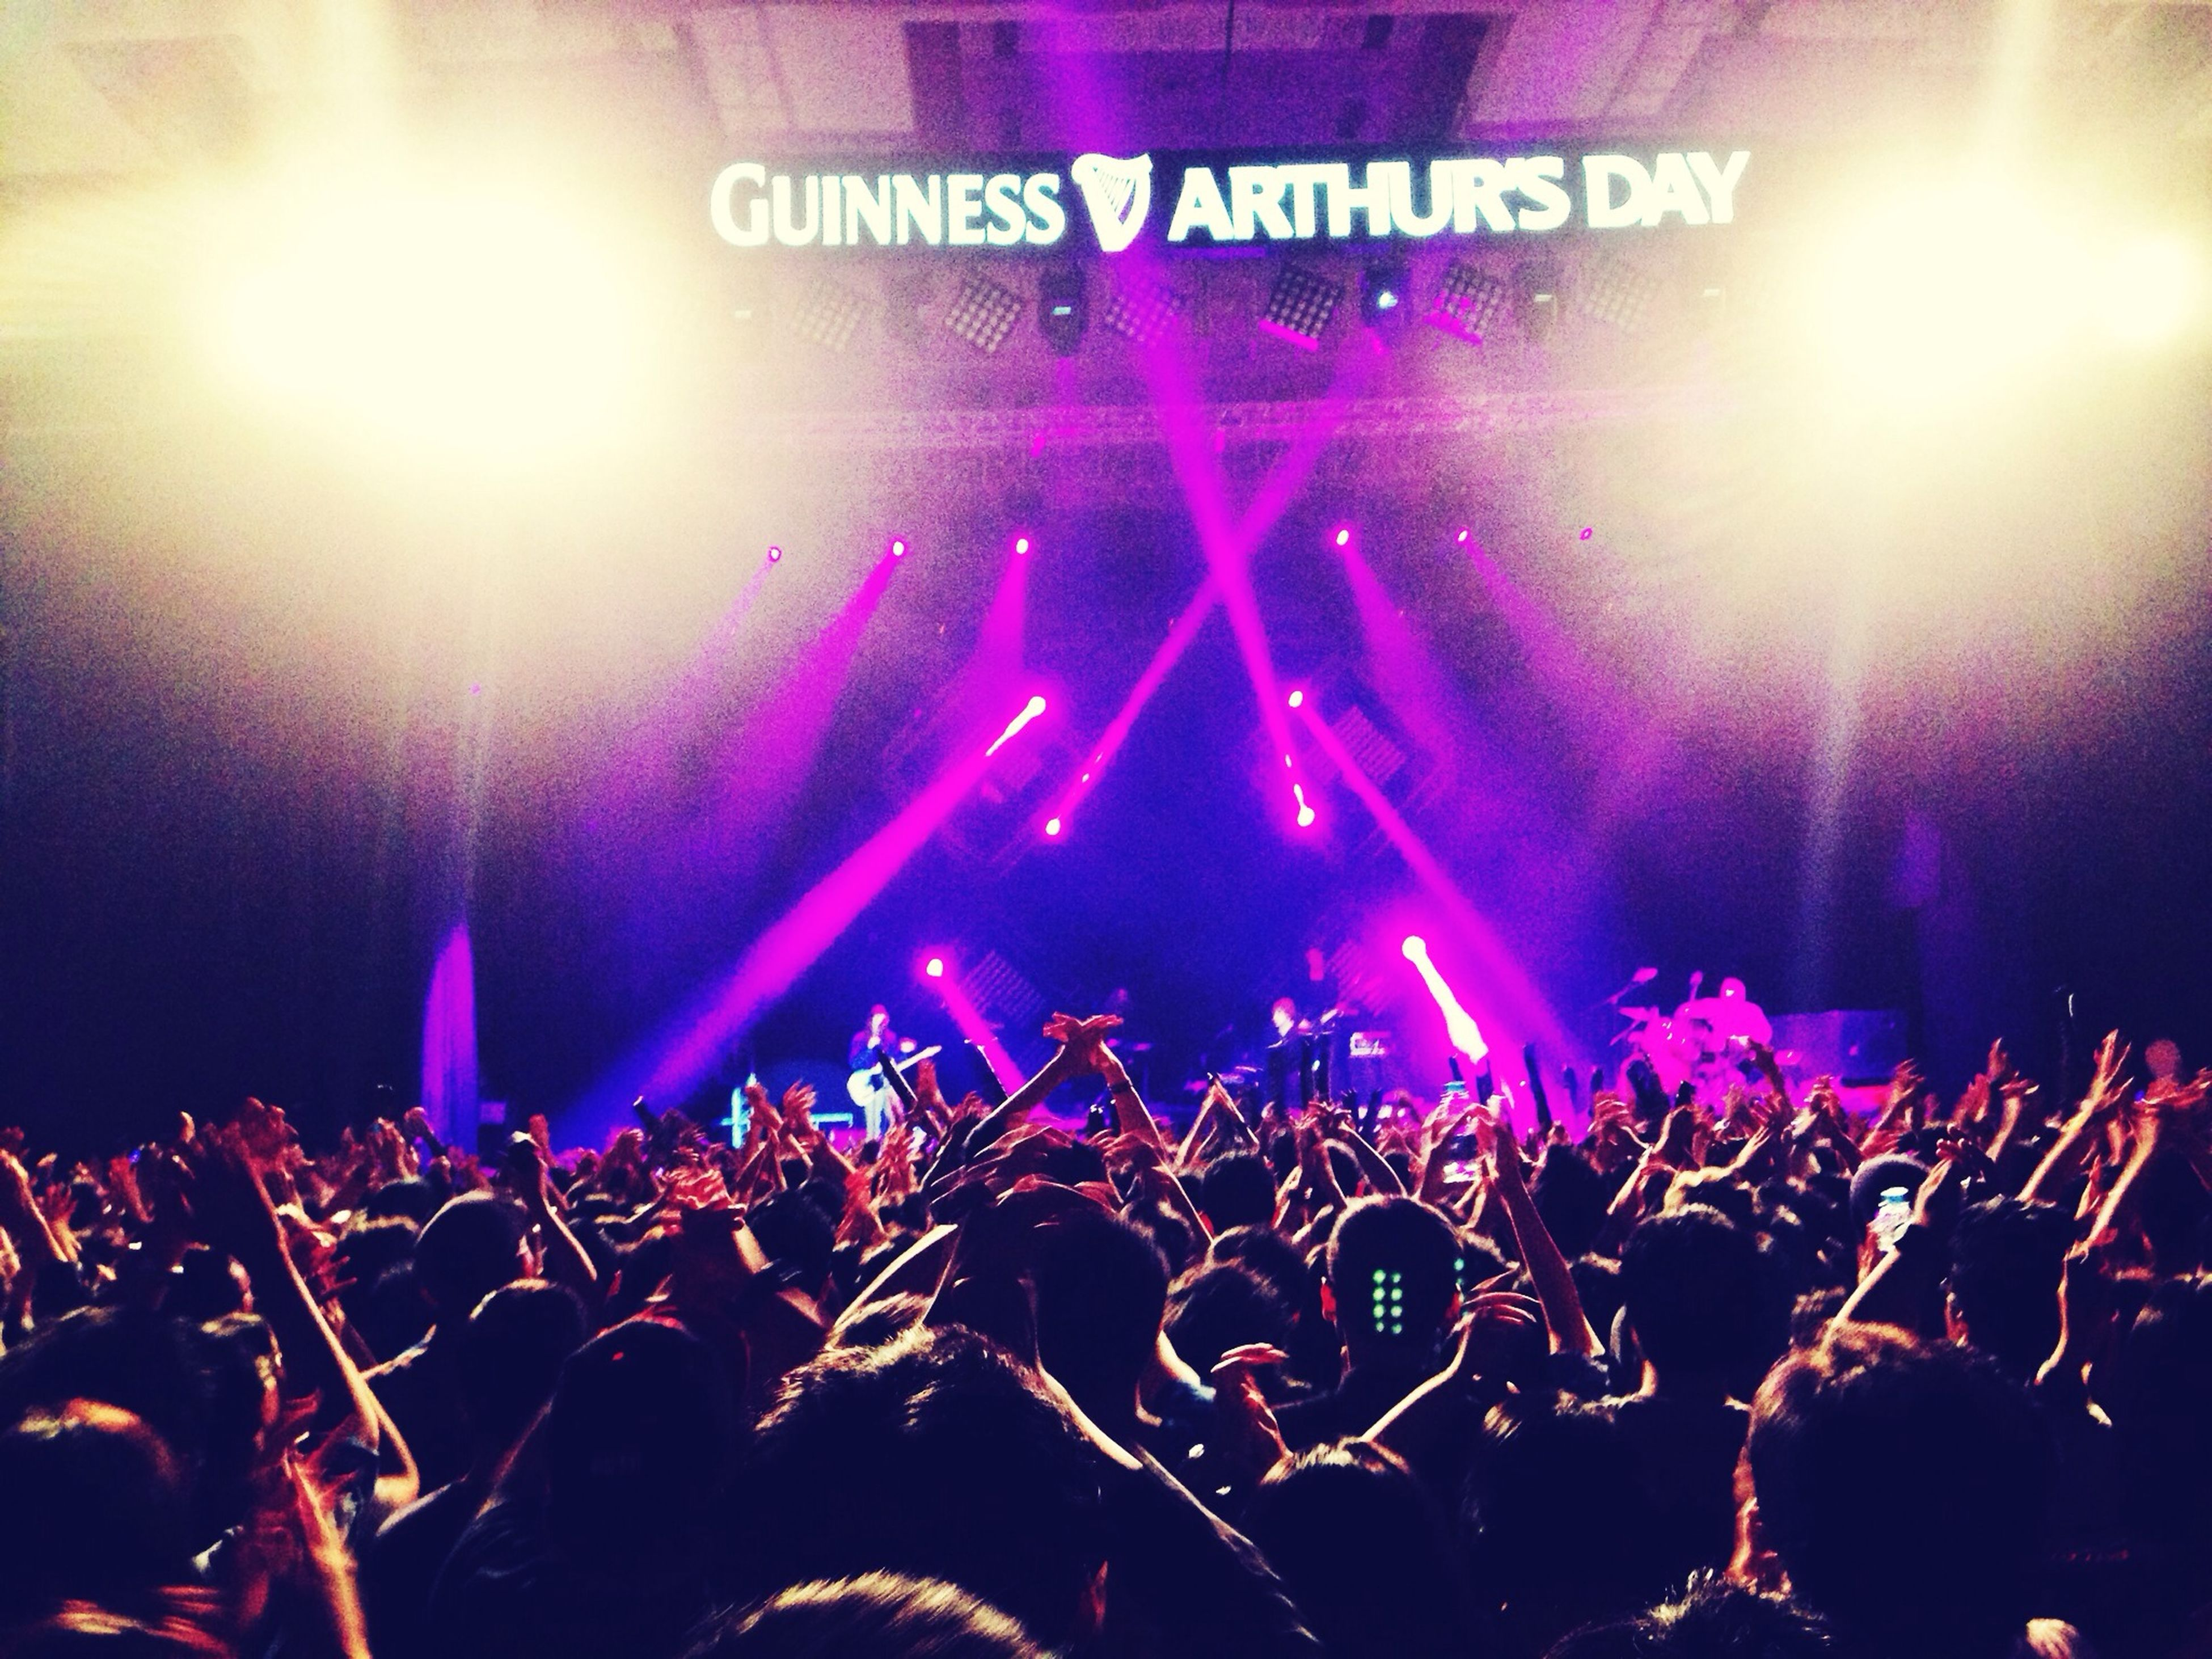 large group of people, illuminated, crowd, arts culture and entertainment, music, event, nightlife, night, performance, enjoyment, celebration, person, music festival, concert, youth culture, popular music concert, men, excitement, fun